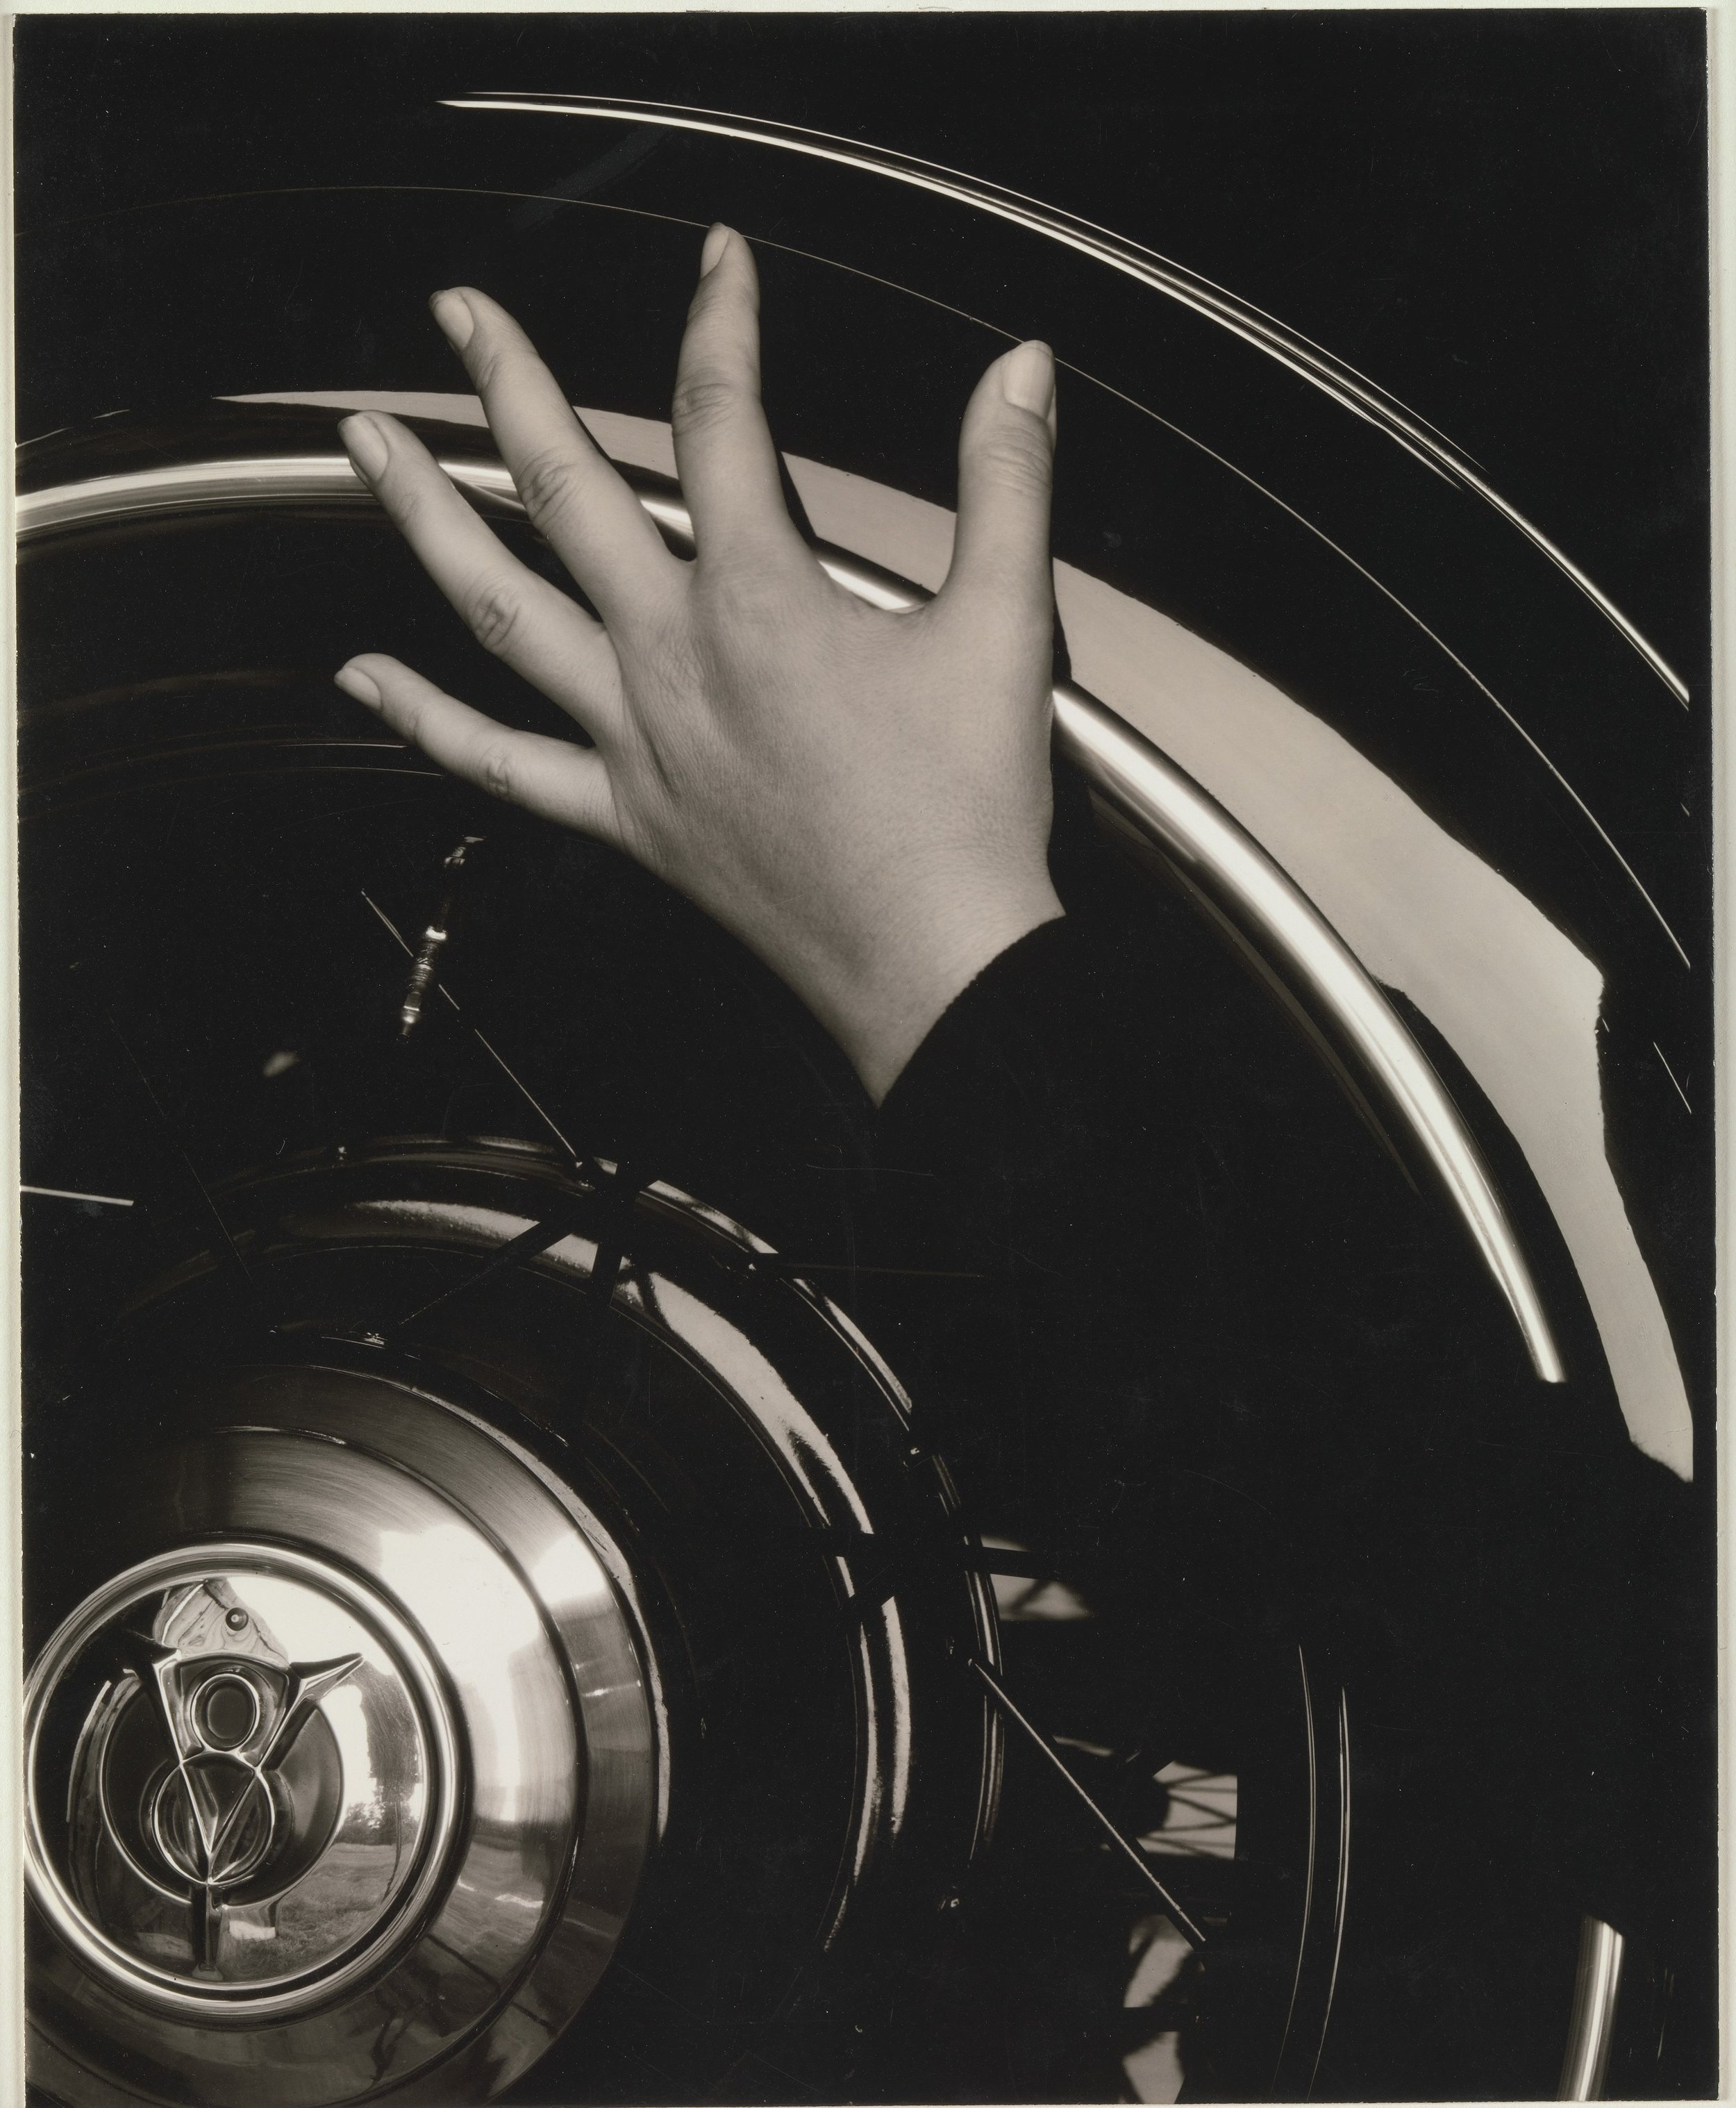 Alfred Stieglitz,  Georgia O'Keeffe—Hand and Wheel , 1919. Courtesy of the Metropolitan Museum of Art